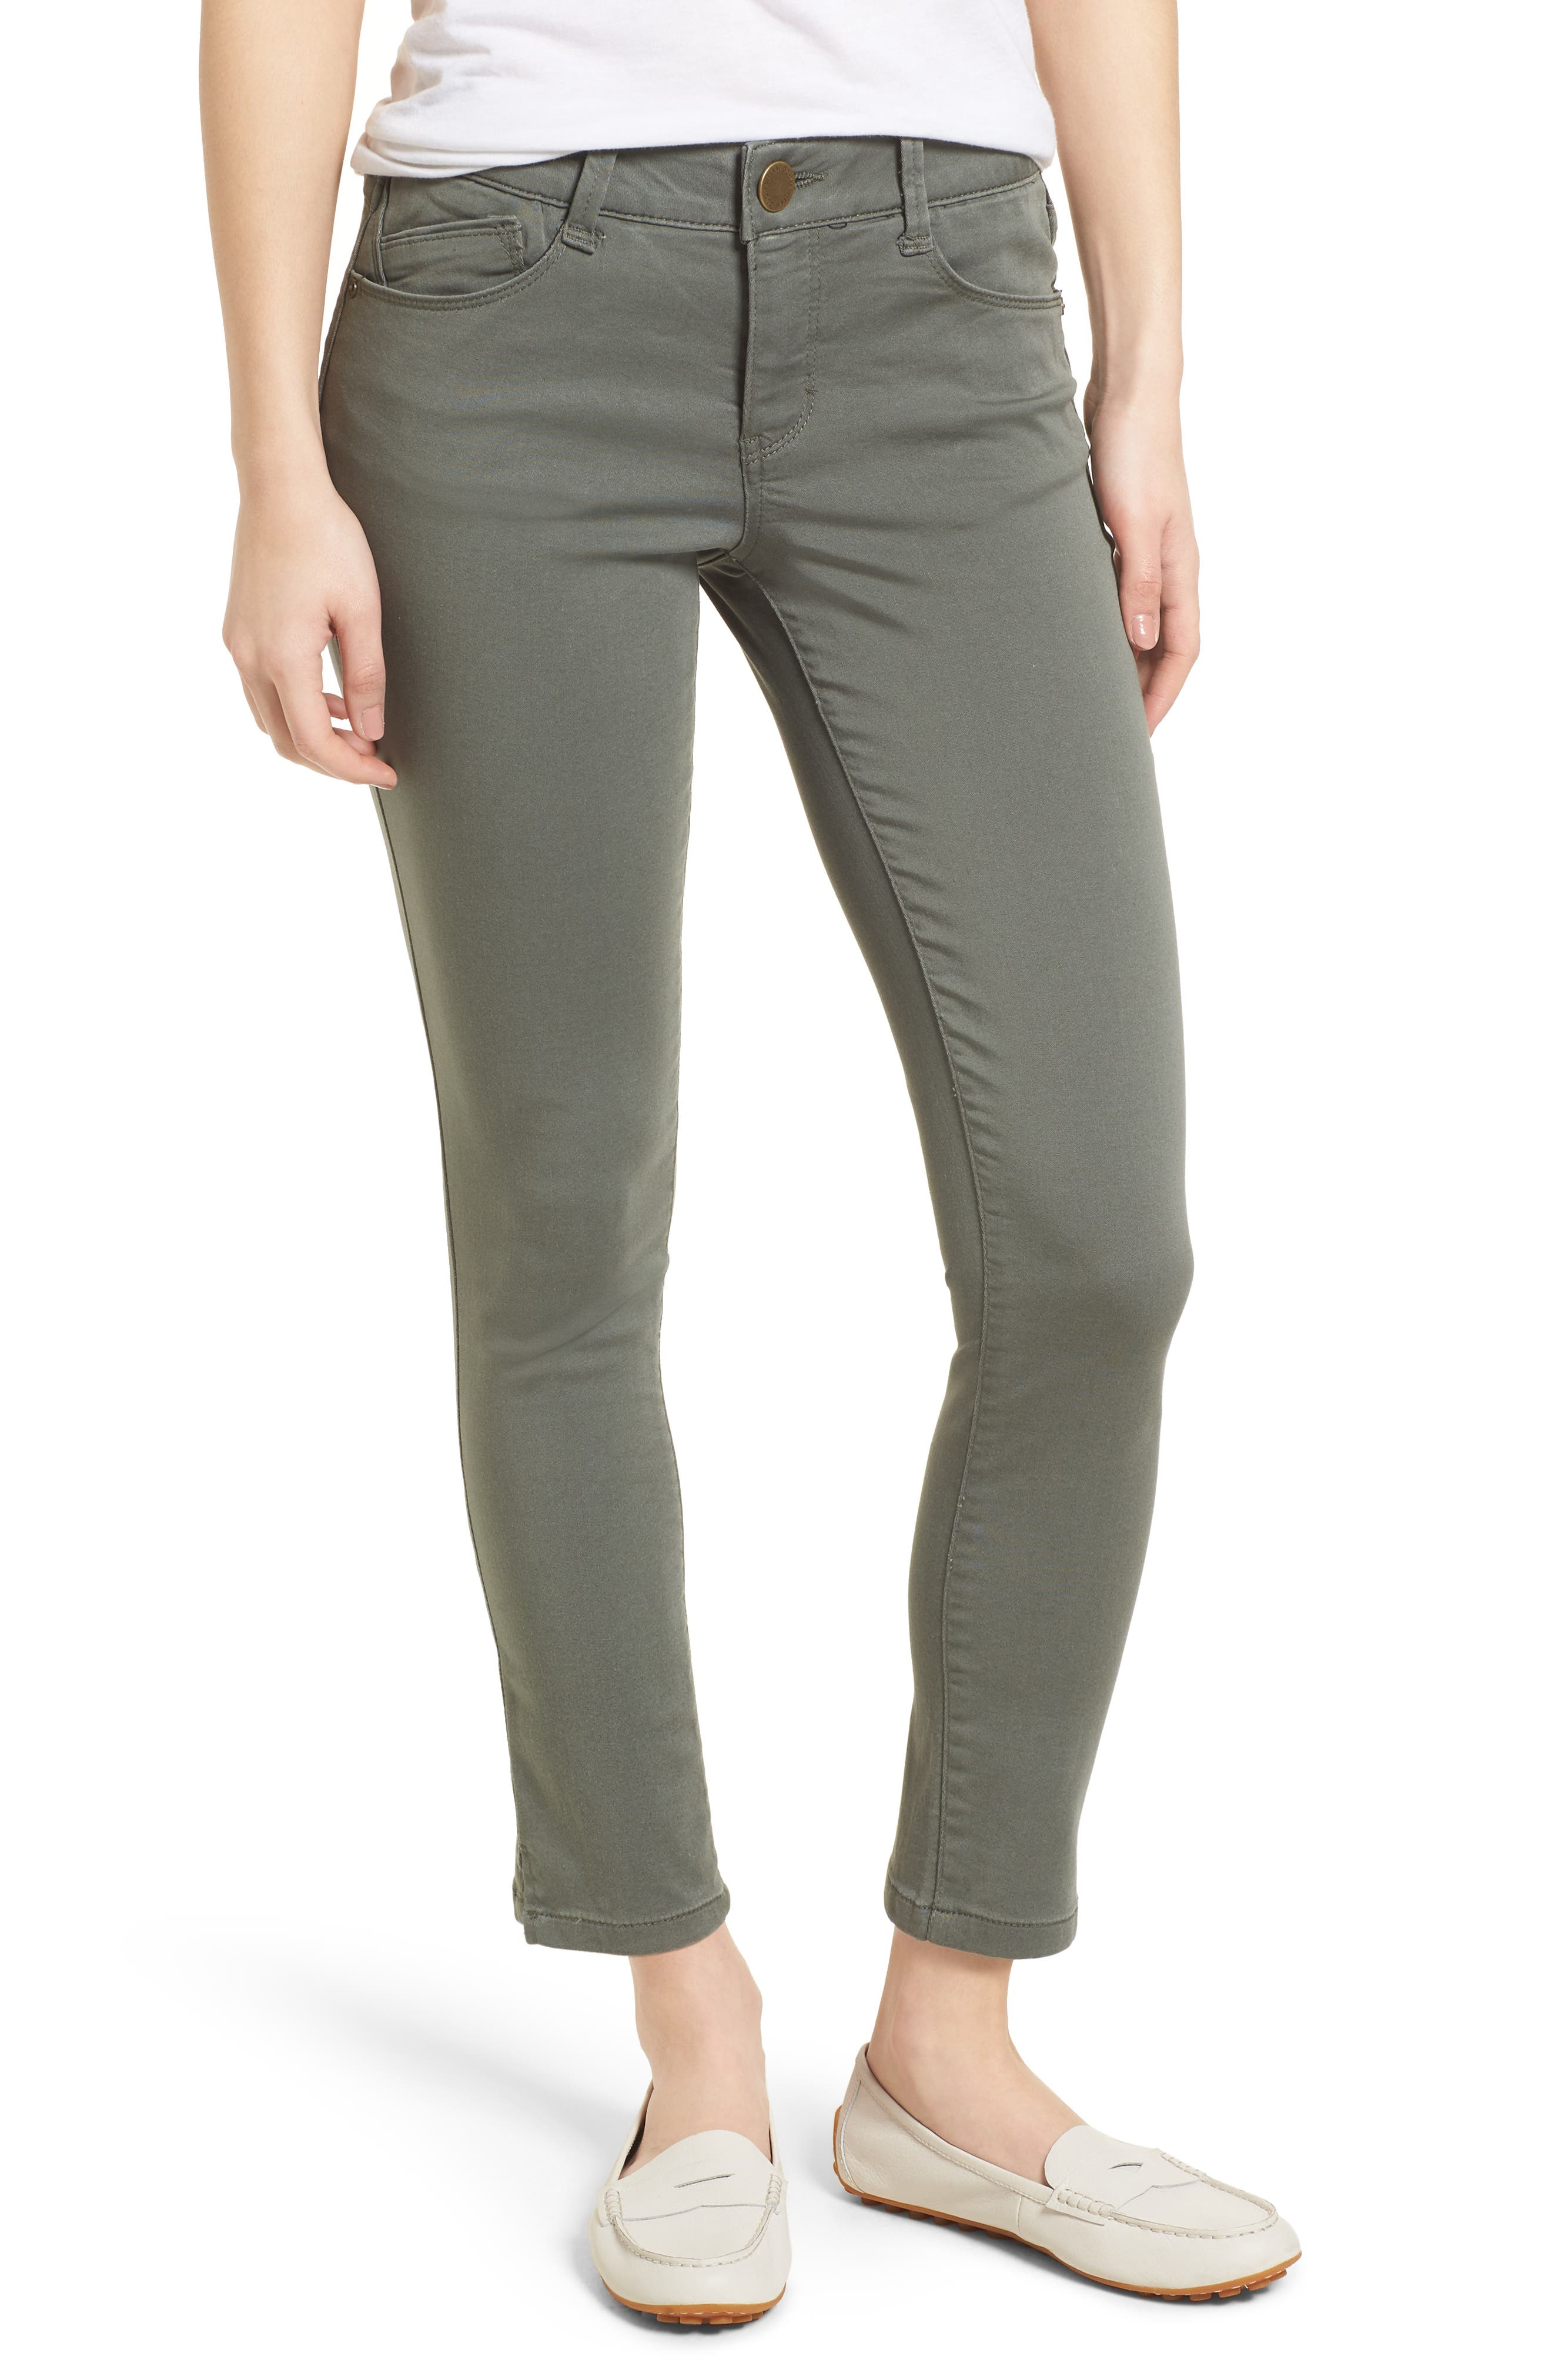 Ab-solution Ankle Skimmer Jeans,                         Main,                         color, Thyme